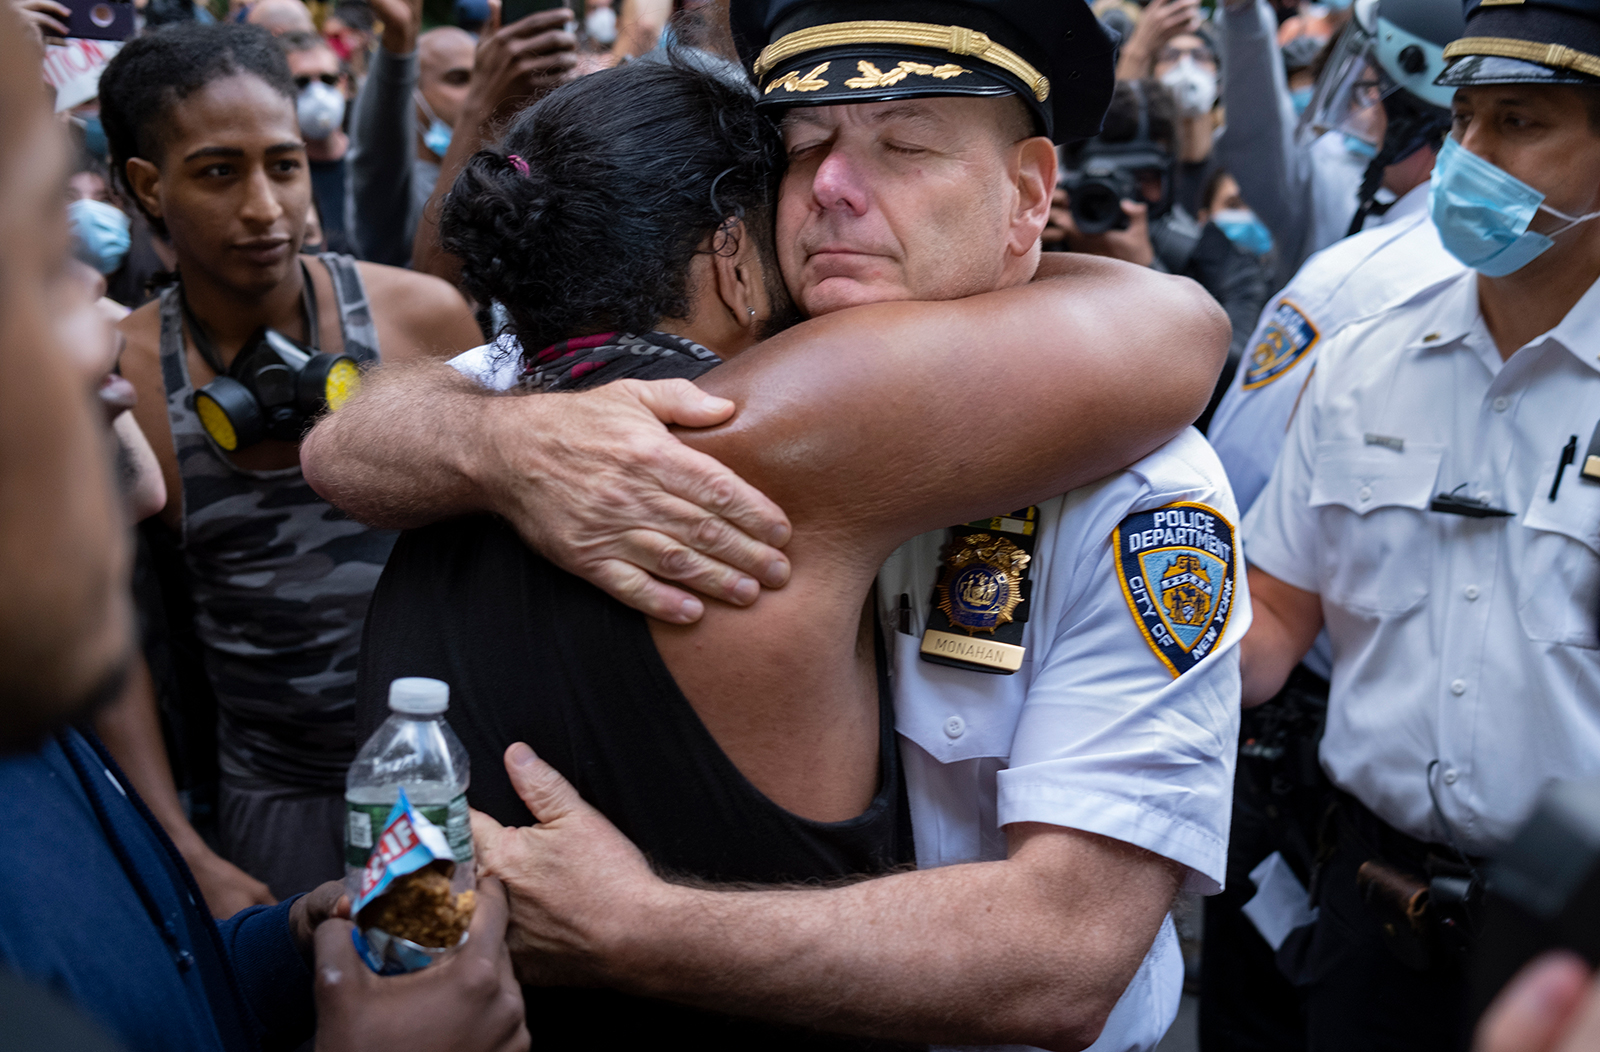 Chief of Department of the New York City Police, Terence Monahan, hugs an activist. (Craig Ruttle/AP via CNN Wire)